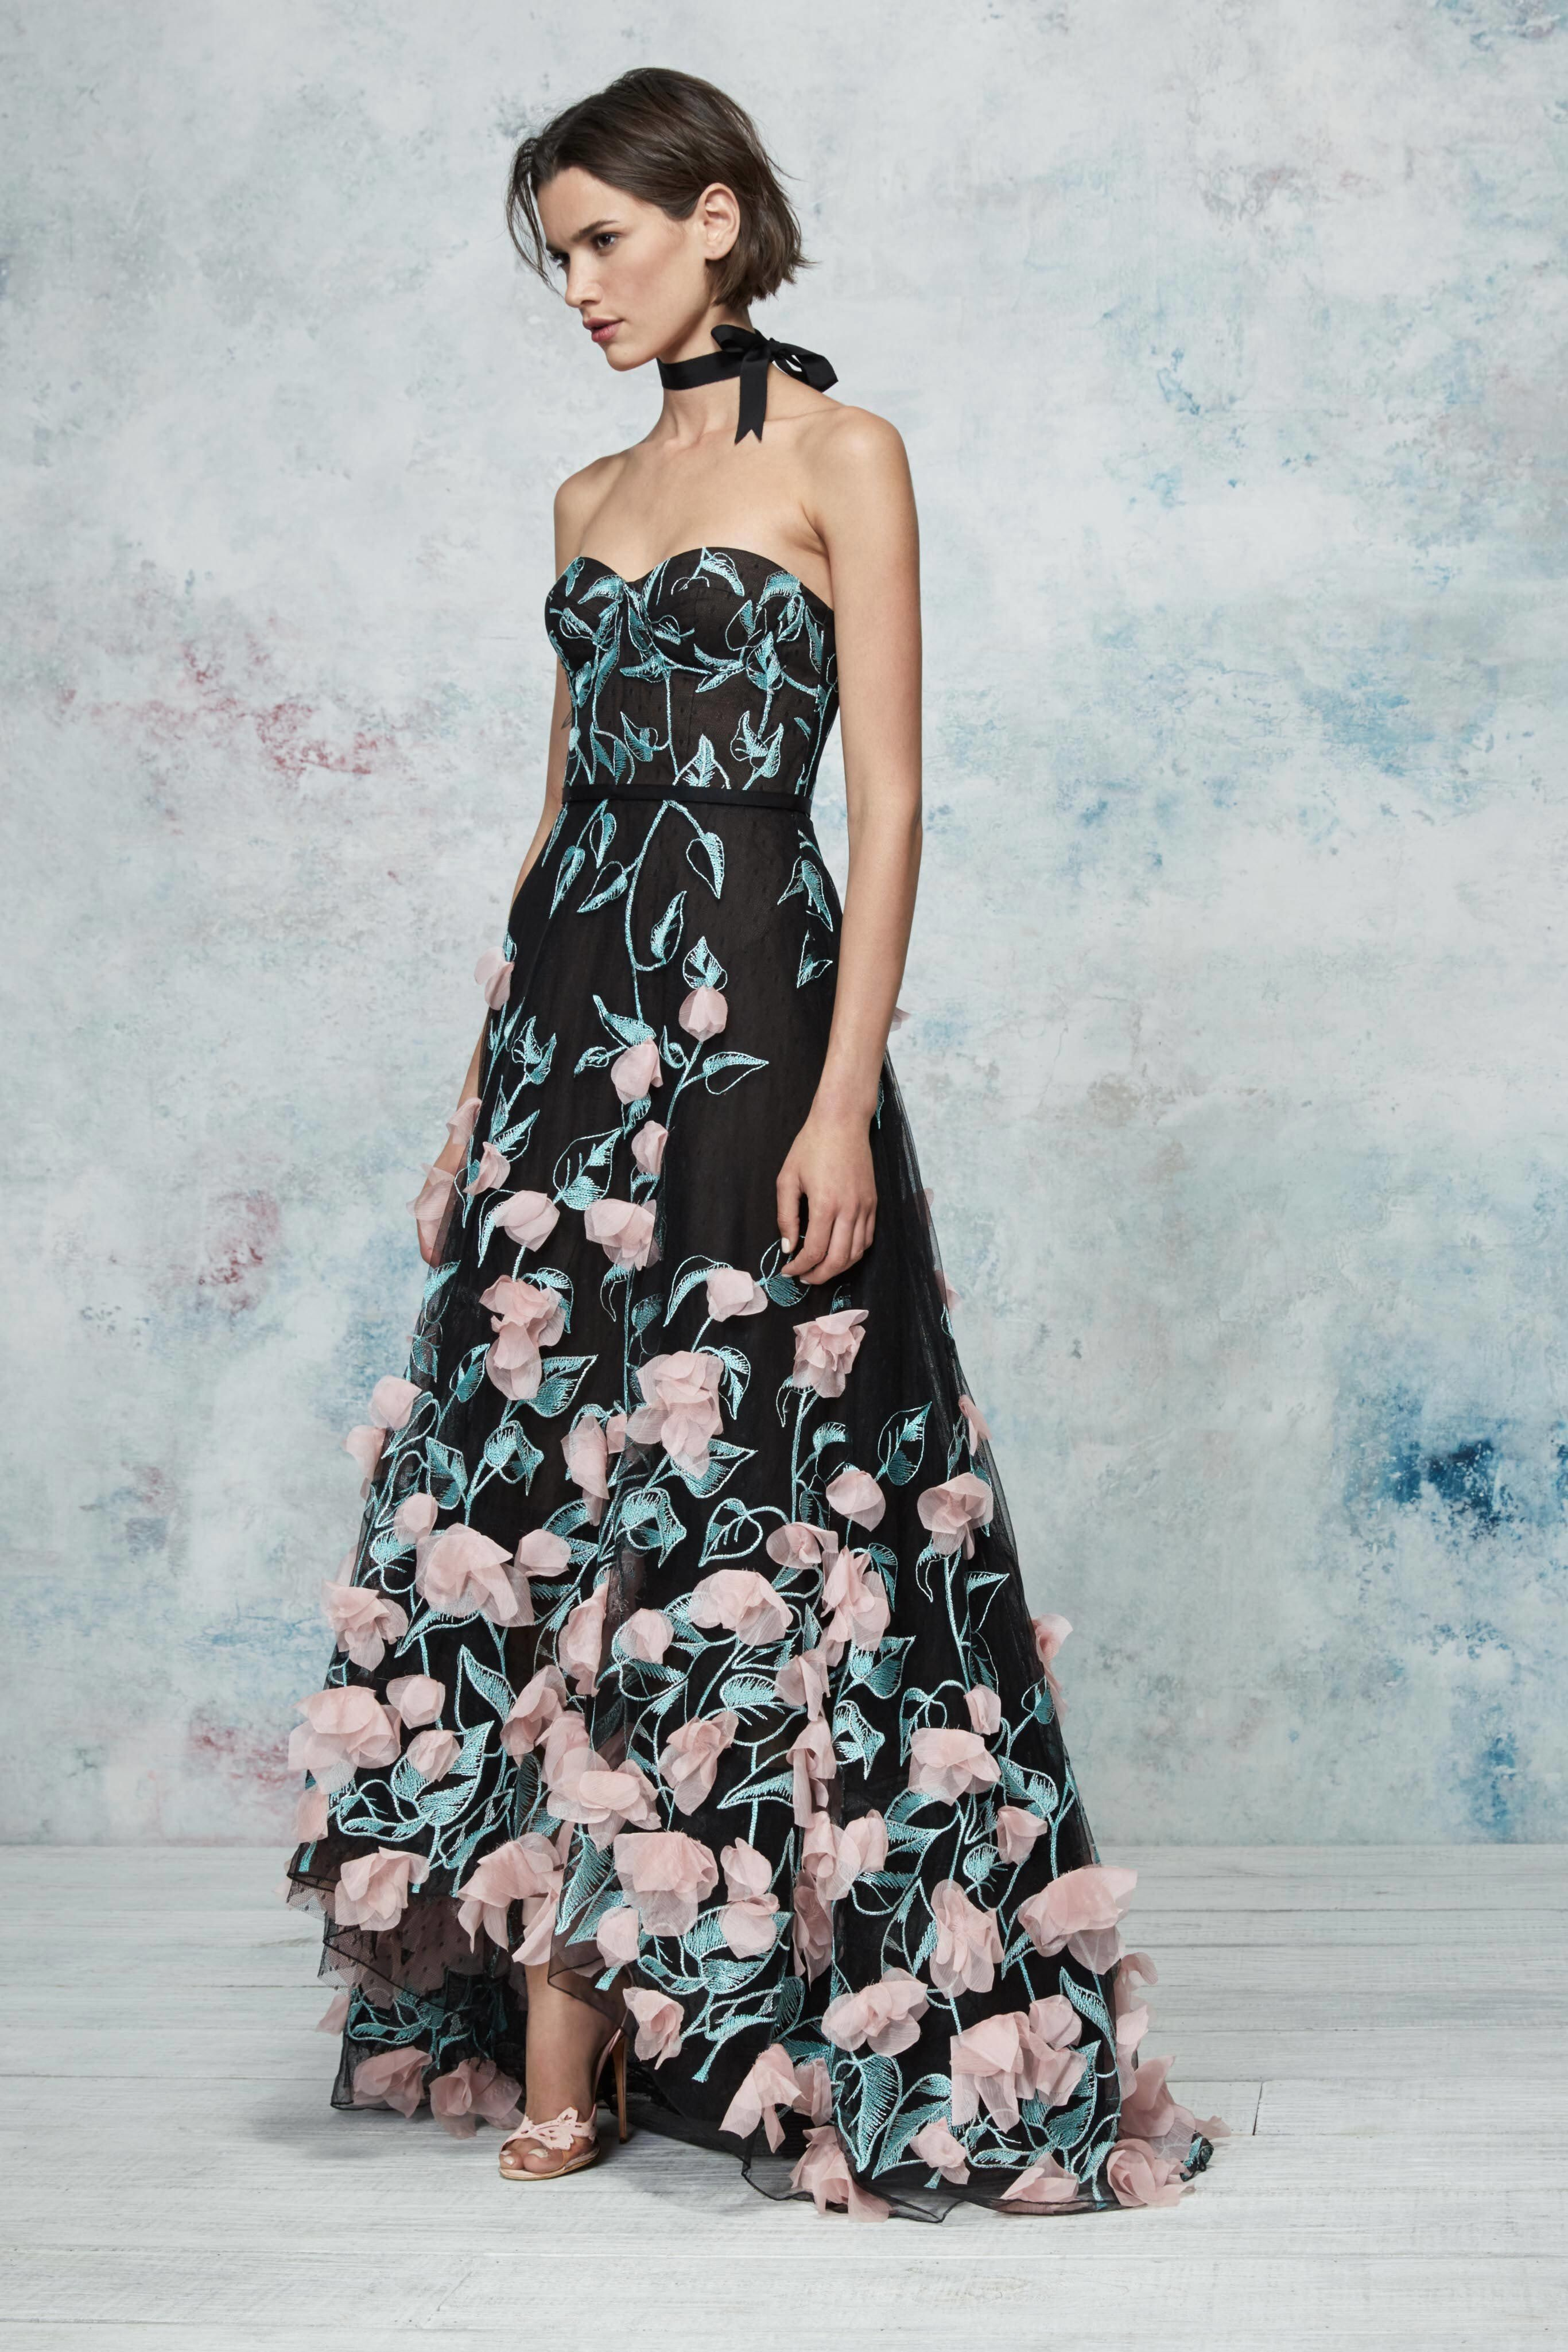 Black lace dress 3/4 sleeve may 2019 Marchesa Notte Resort  Fashion Show Collection See the complete